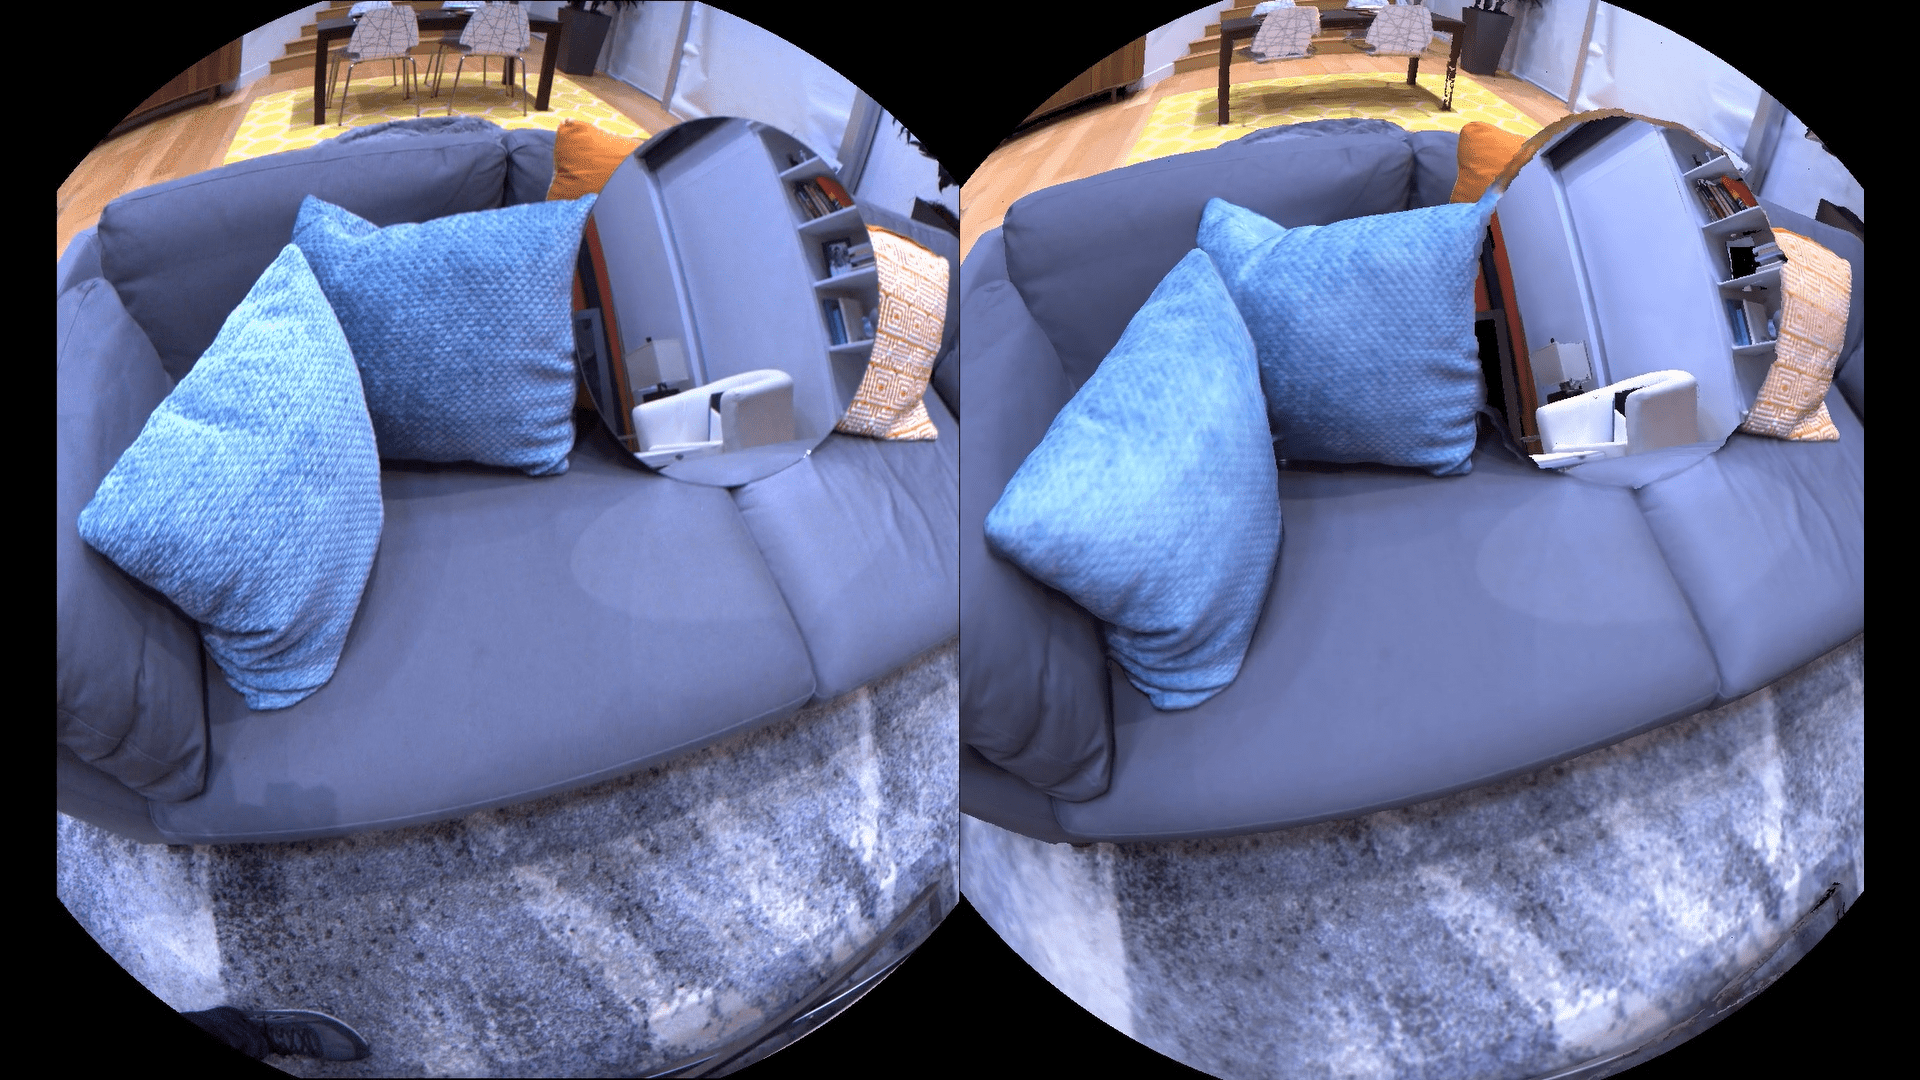 Facebook researchers are building virtual spaces to improve AI and AR